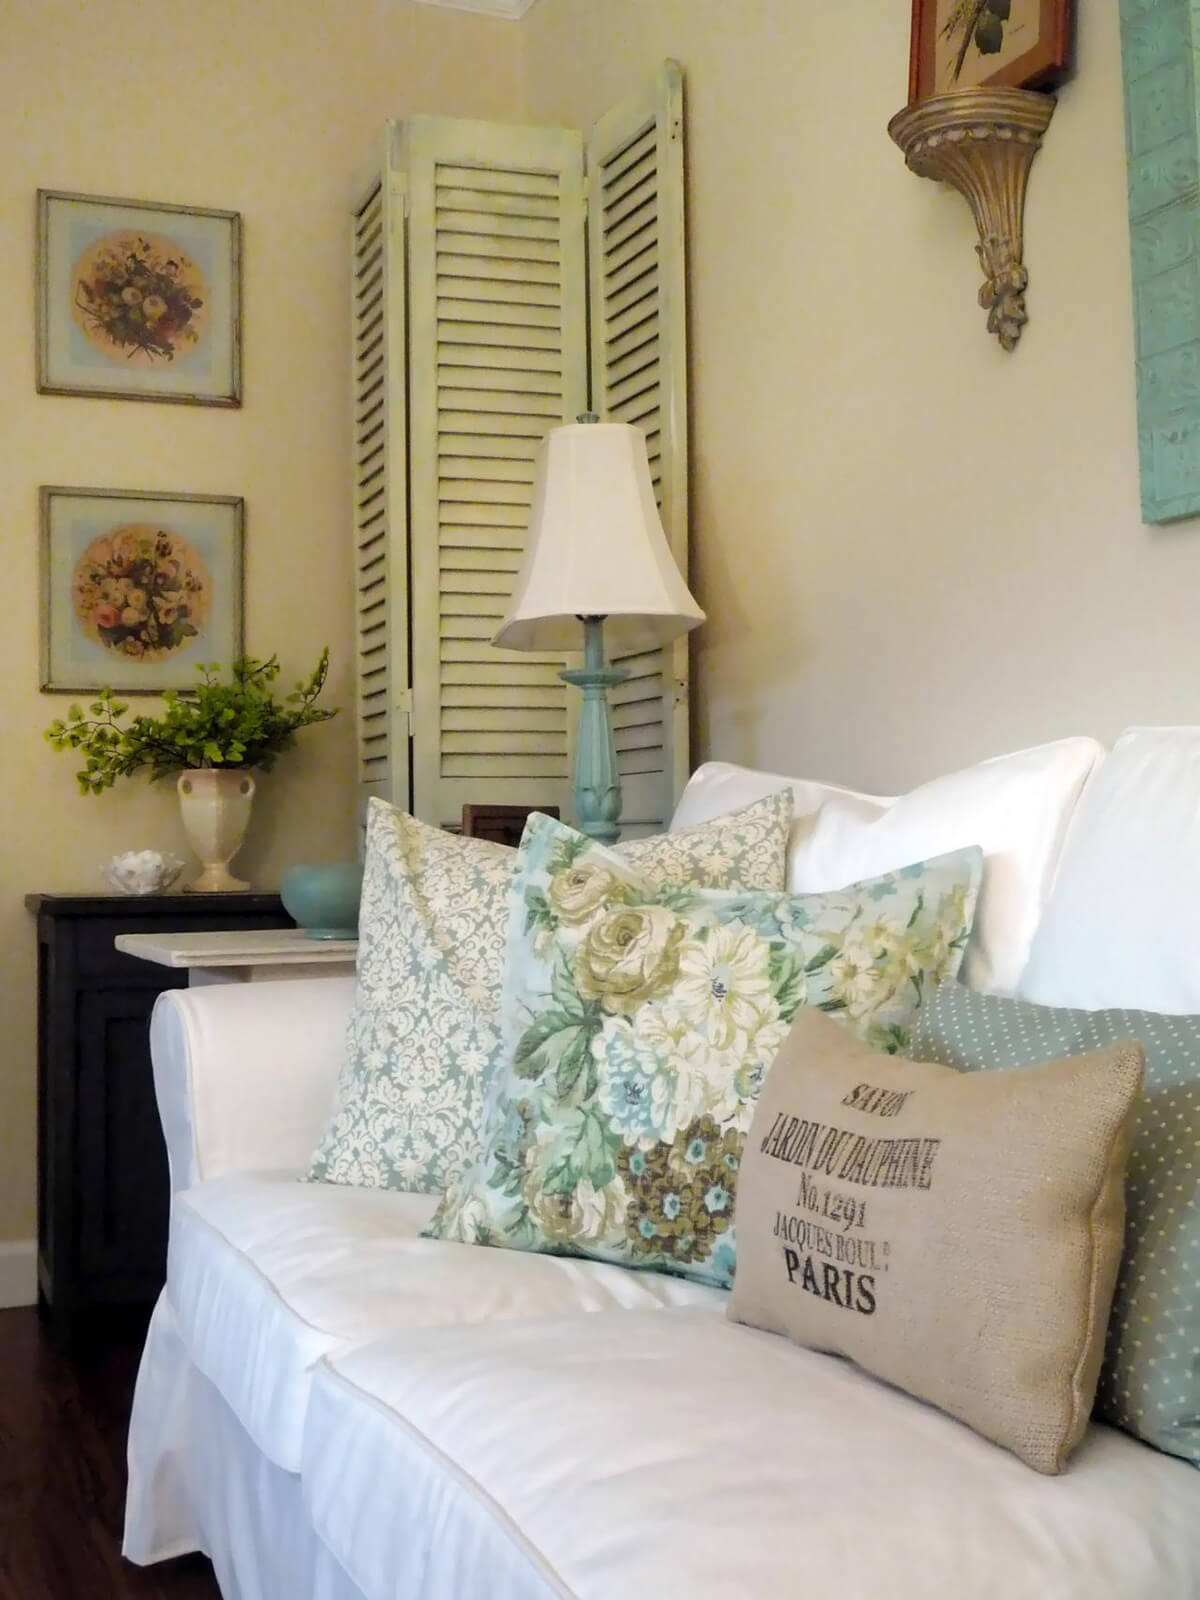 Blue and White Room with Soft Cushions